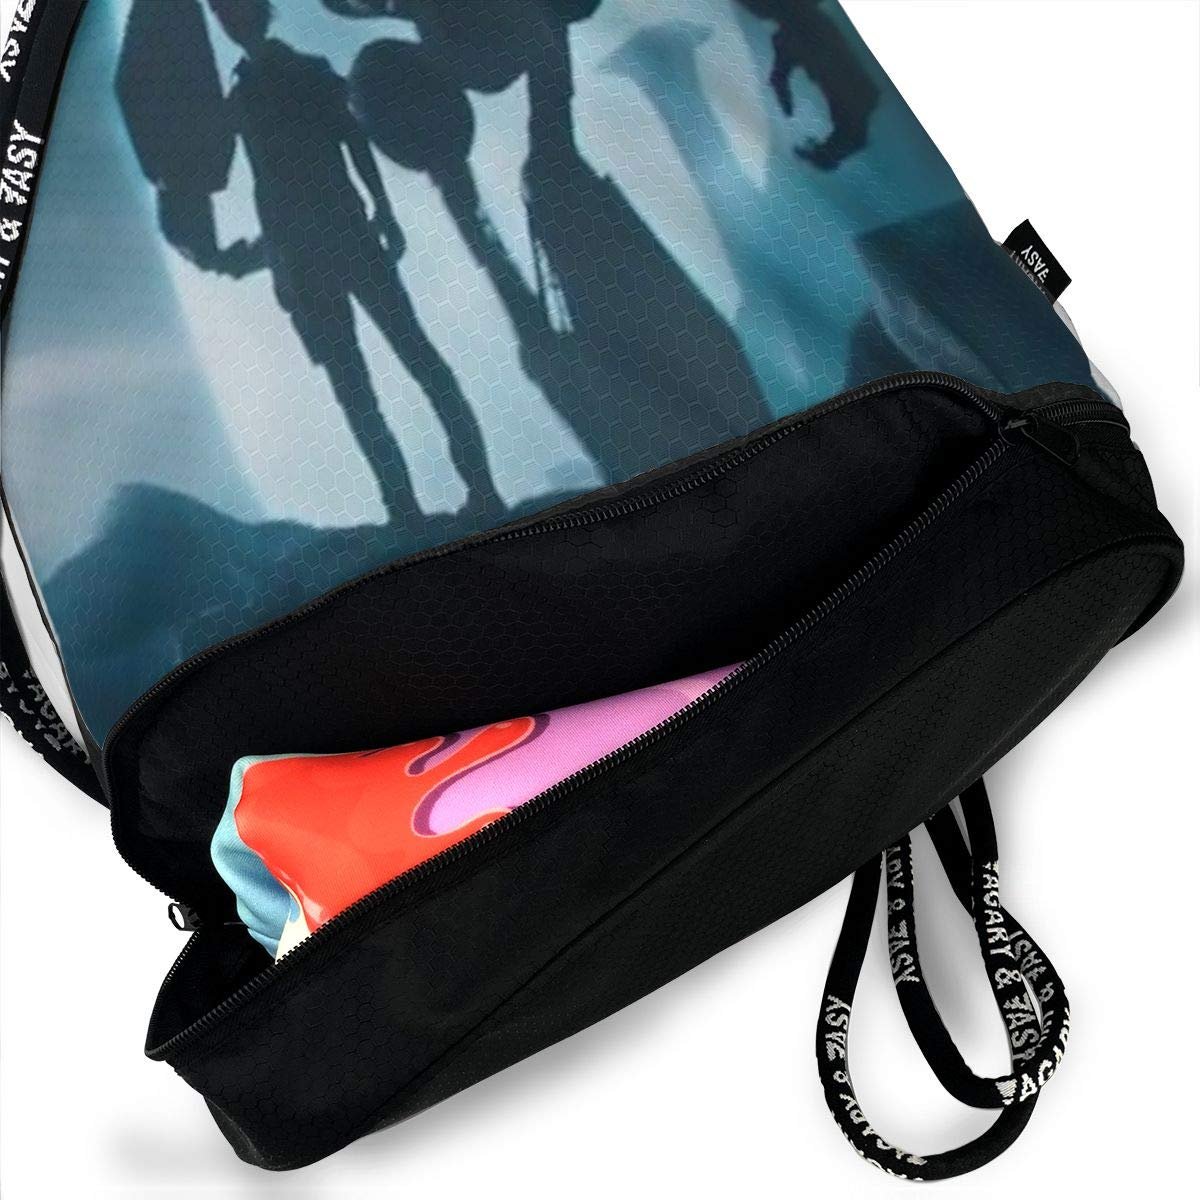 Zol1Q Iron Giant Drawstring Bag for Men /& Women Large Storage Waterproof Cinch Backpack Sackpack Tote Sack for Gym Travel